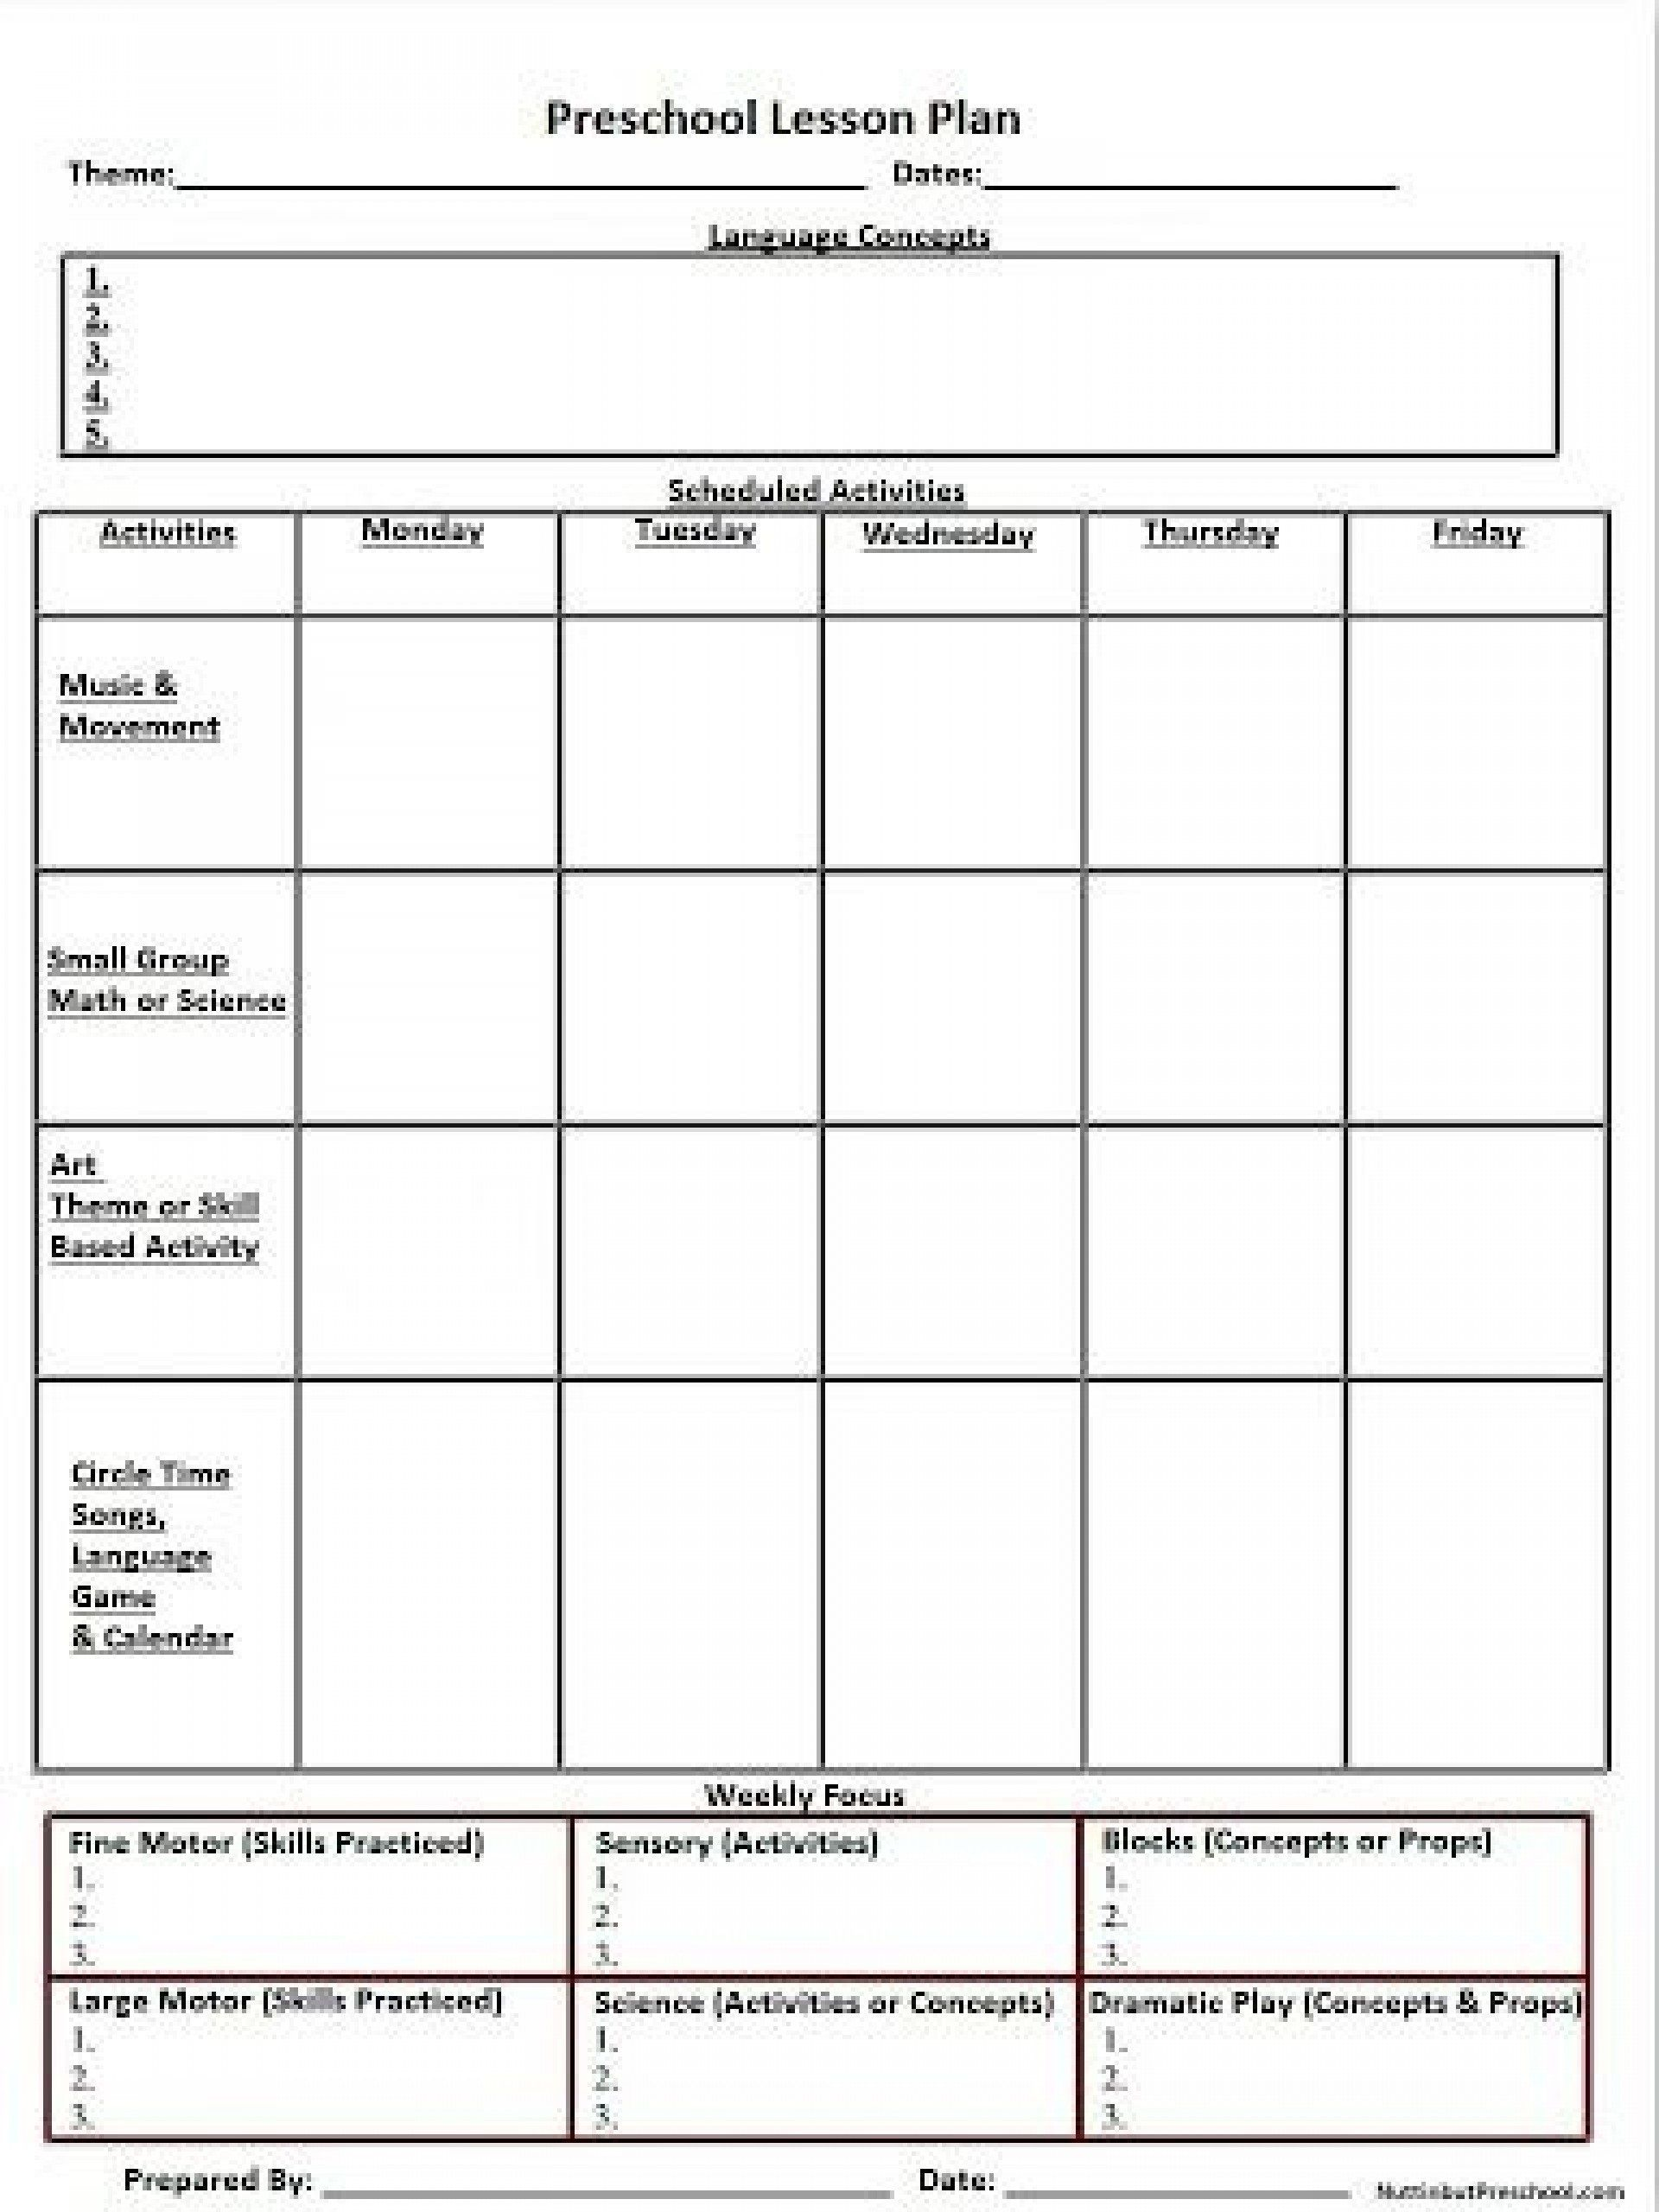 007 Shocking Weekly Lesson Plan Template High School Def  For Science Teacher Math Example English PdfFull